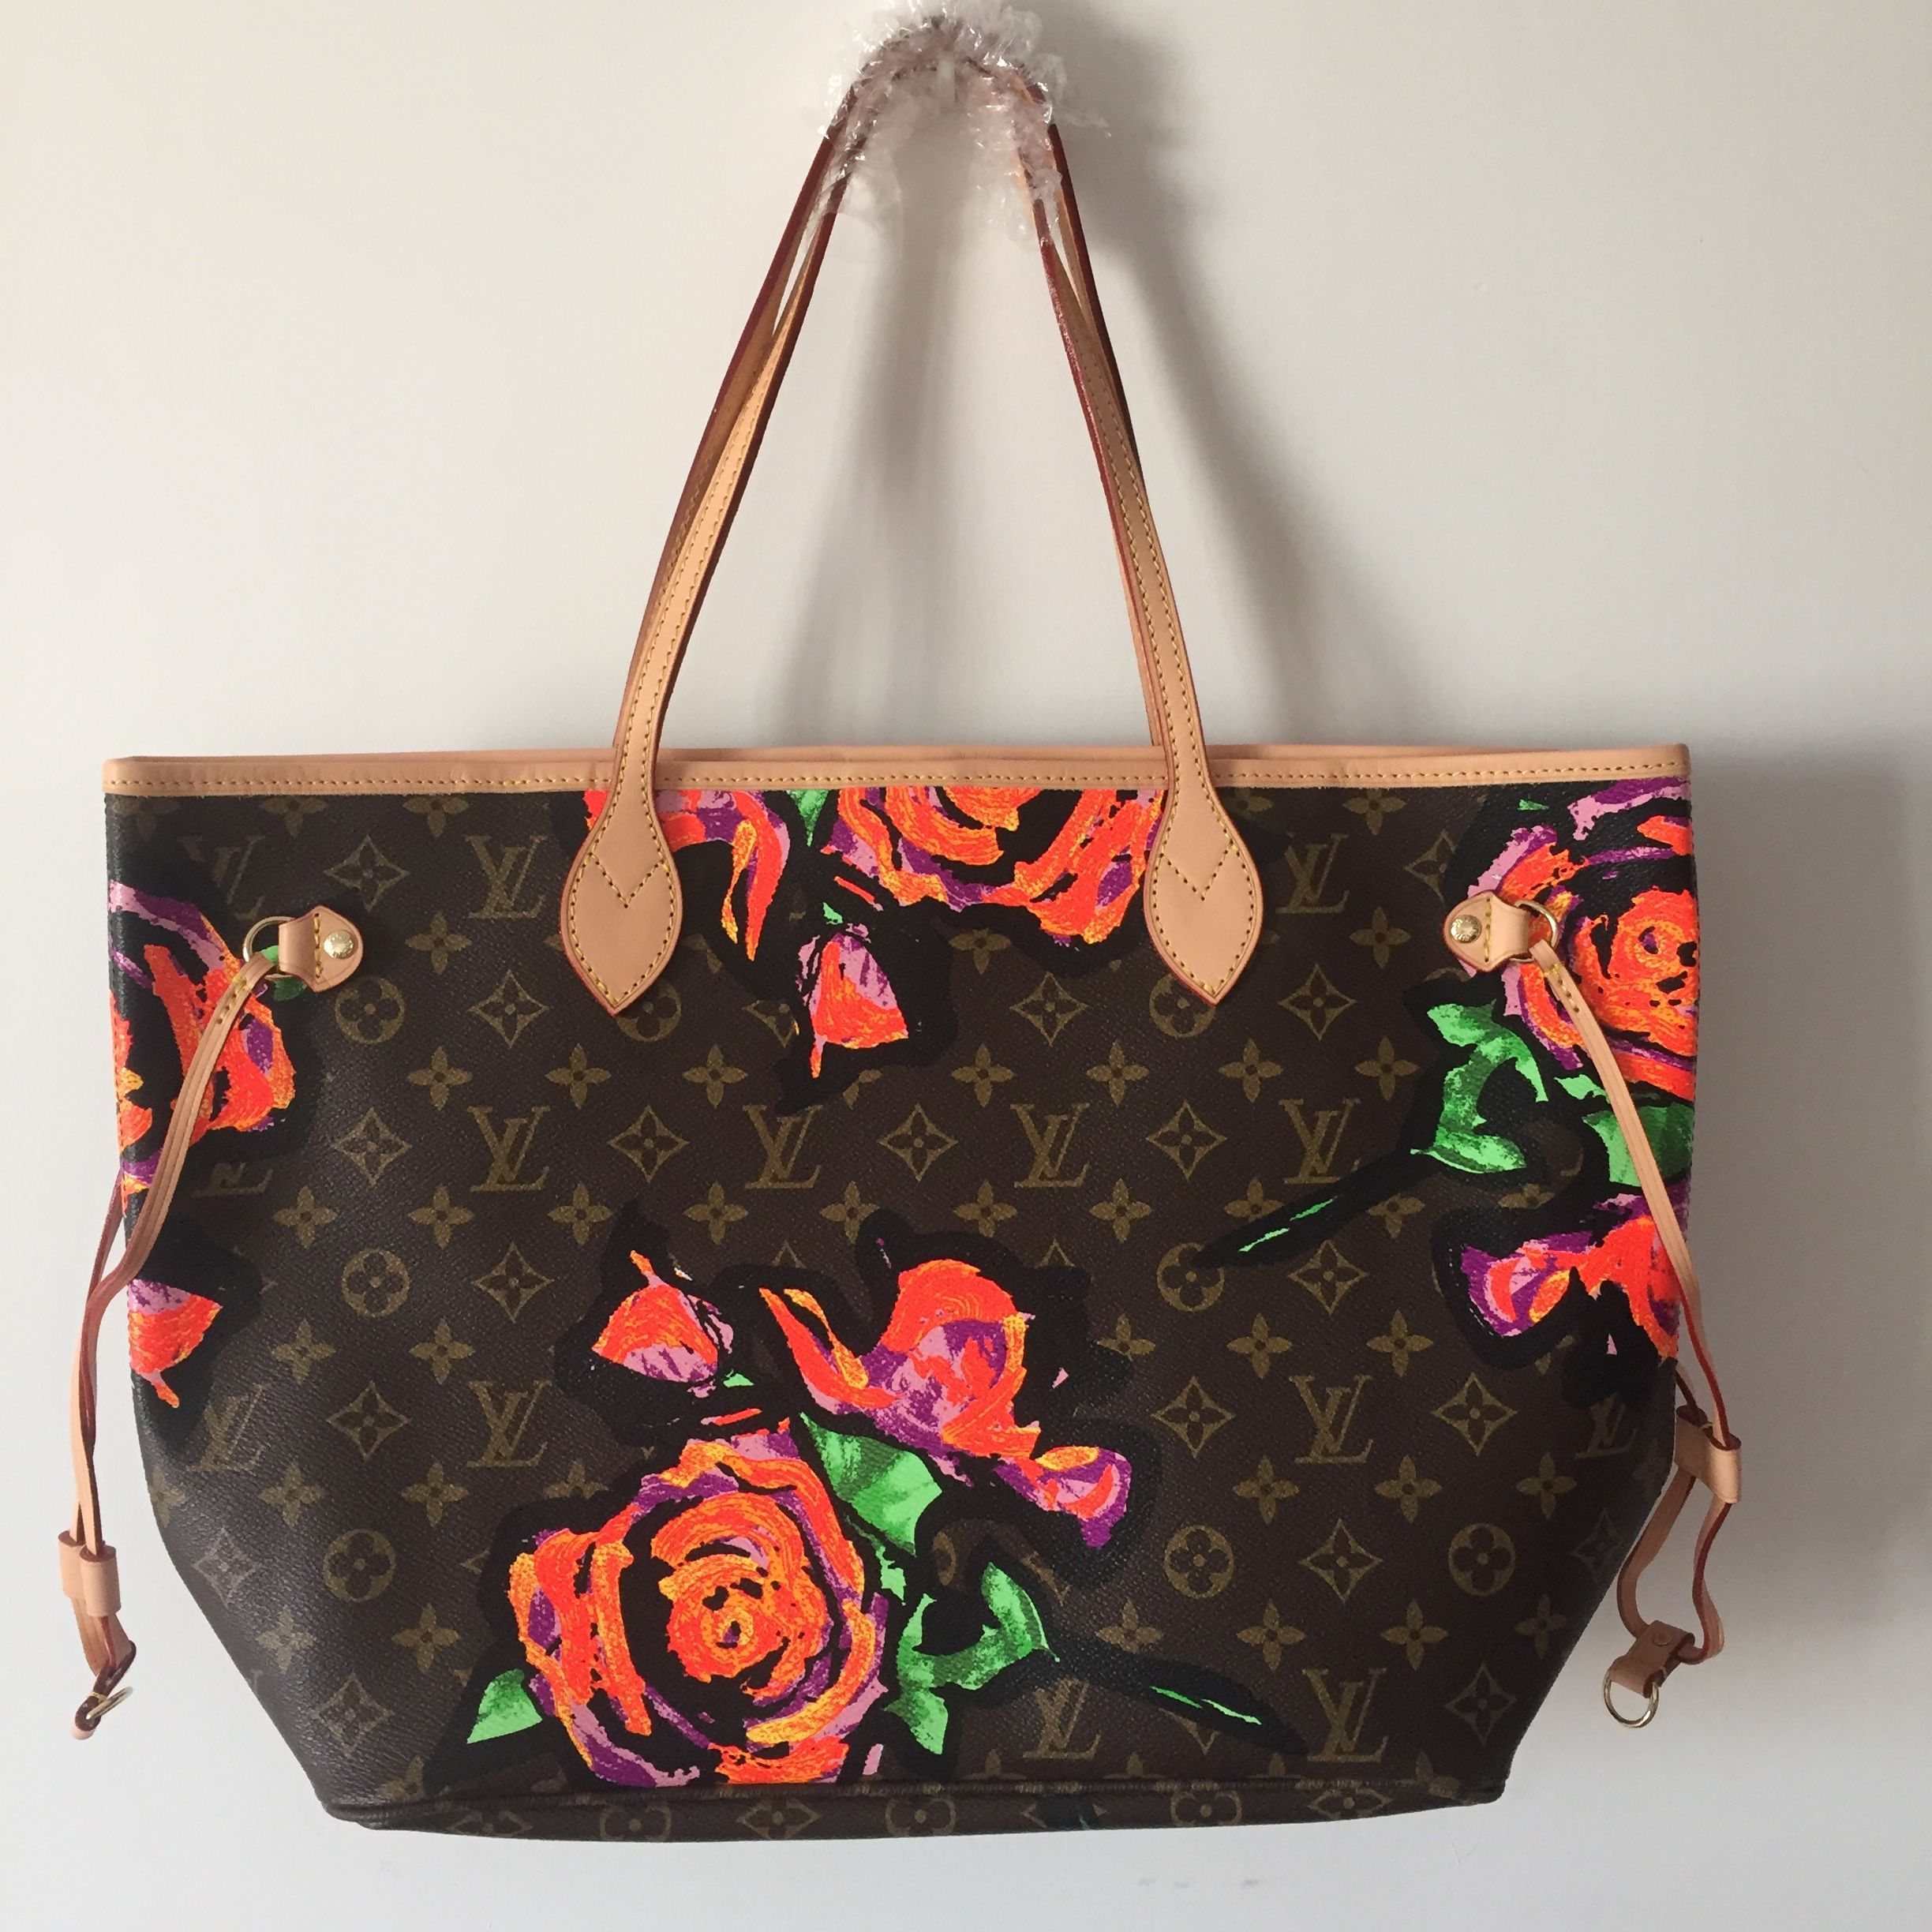 Louis Vuitton Lv Neverfull Shopping Bag Flower Design Mm Size